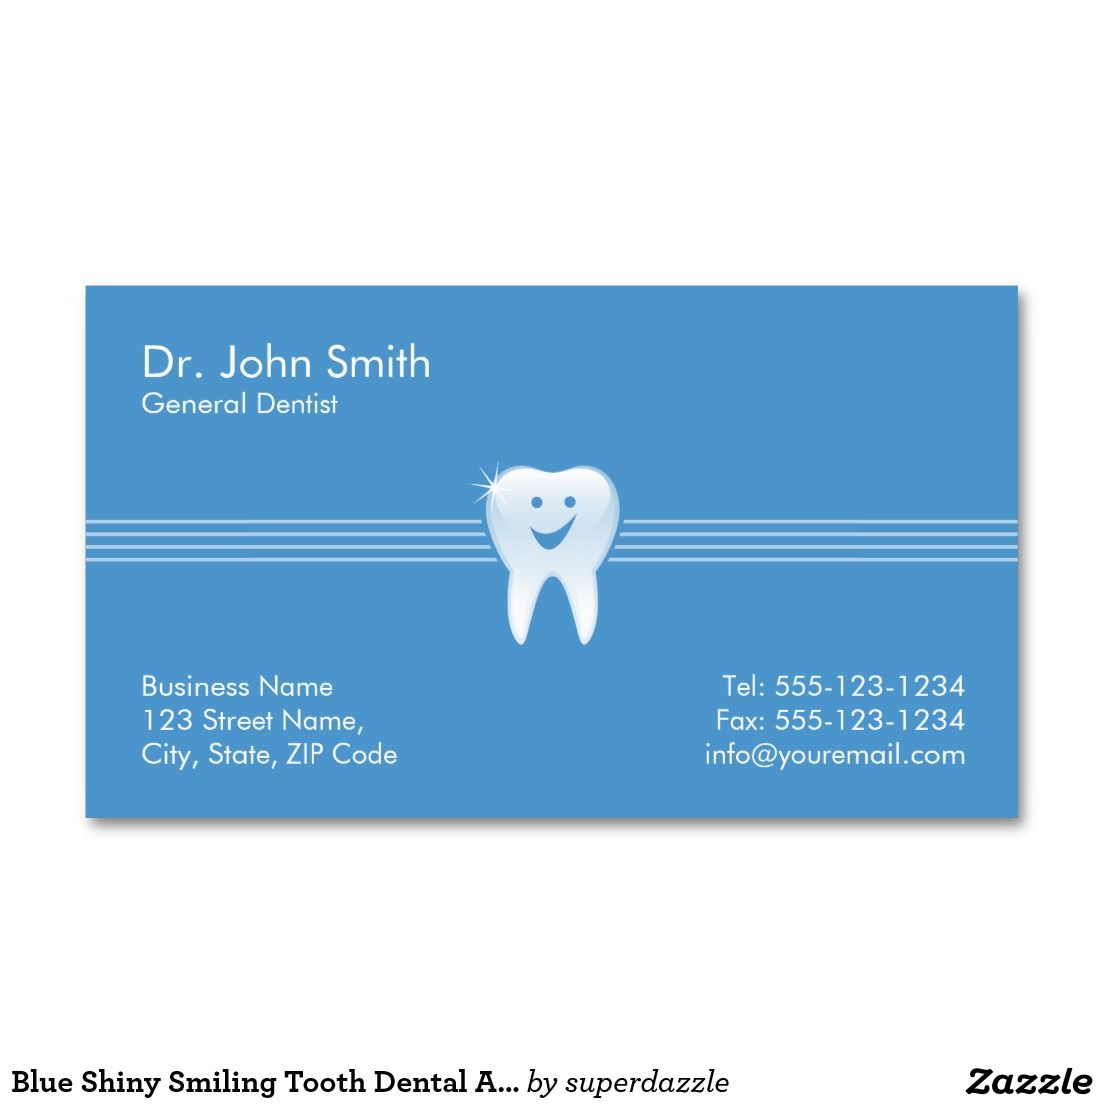 Blue Shiny Smiling Tooth Dental Appointment Pinterest